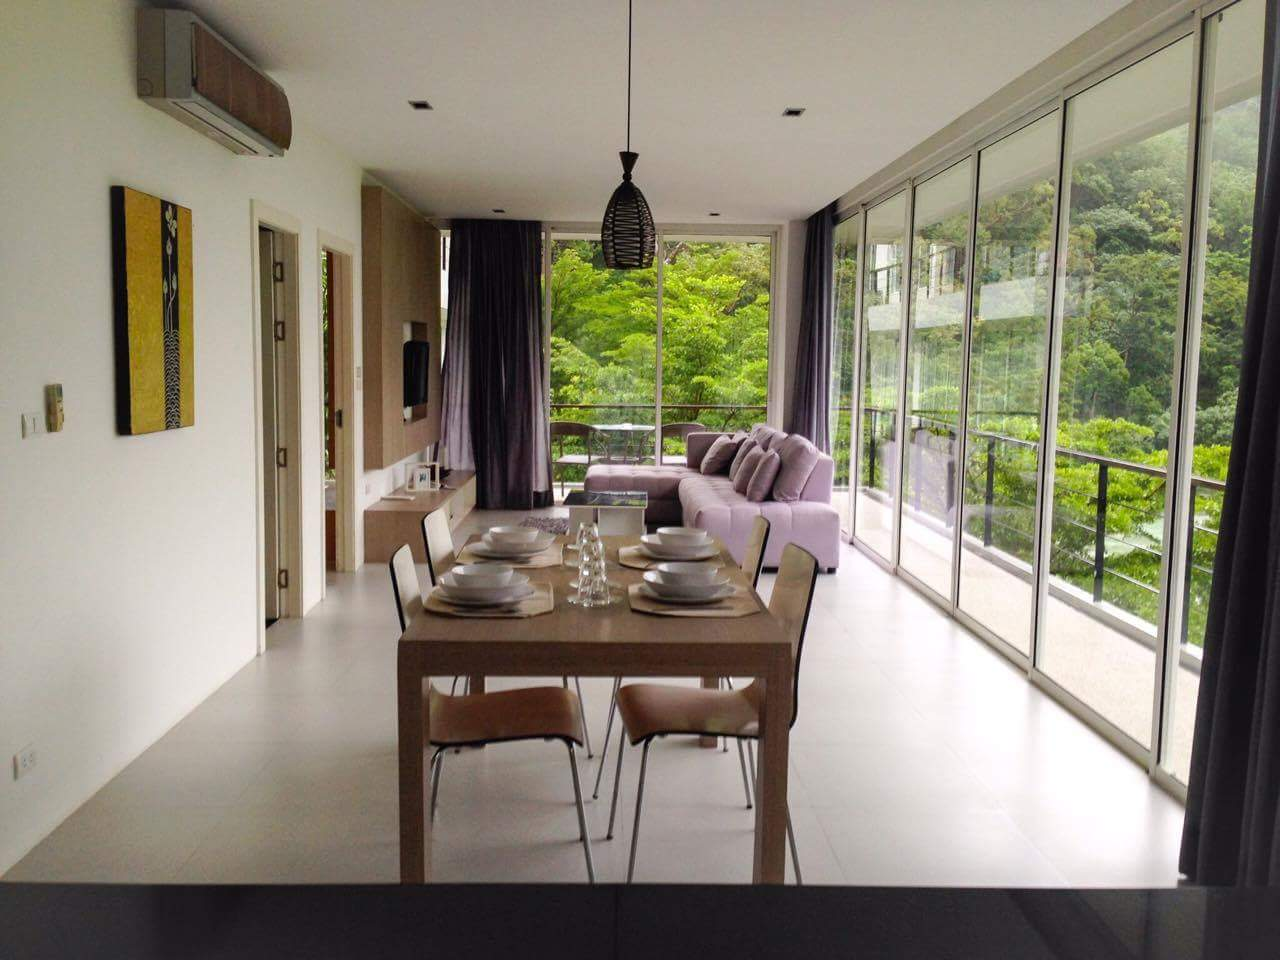 Apartment fot Rent – Kamala Phuket